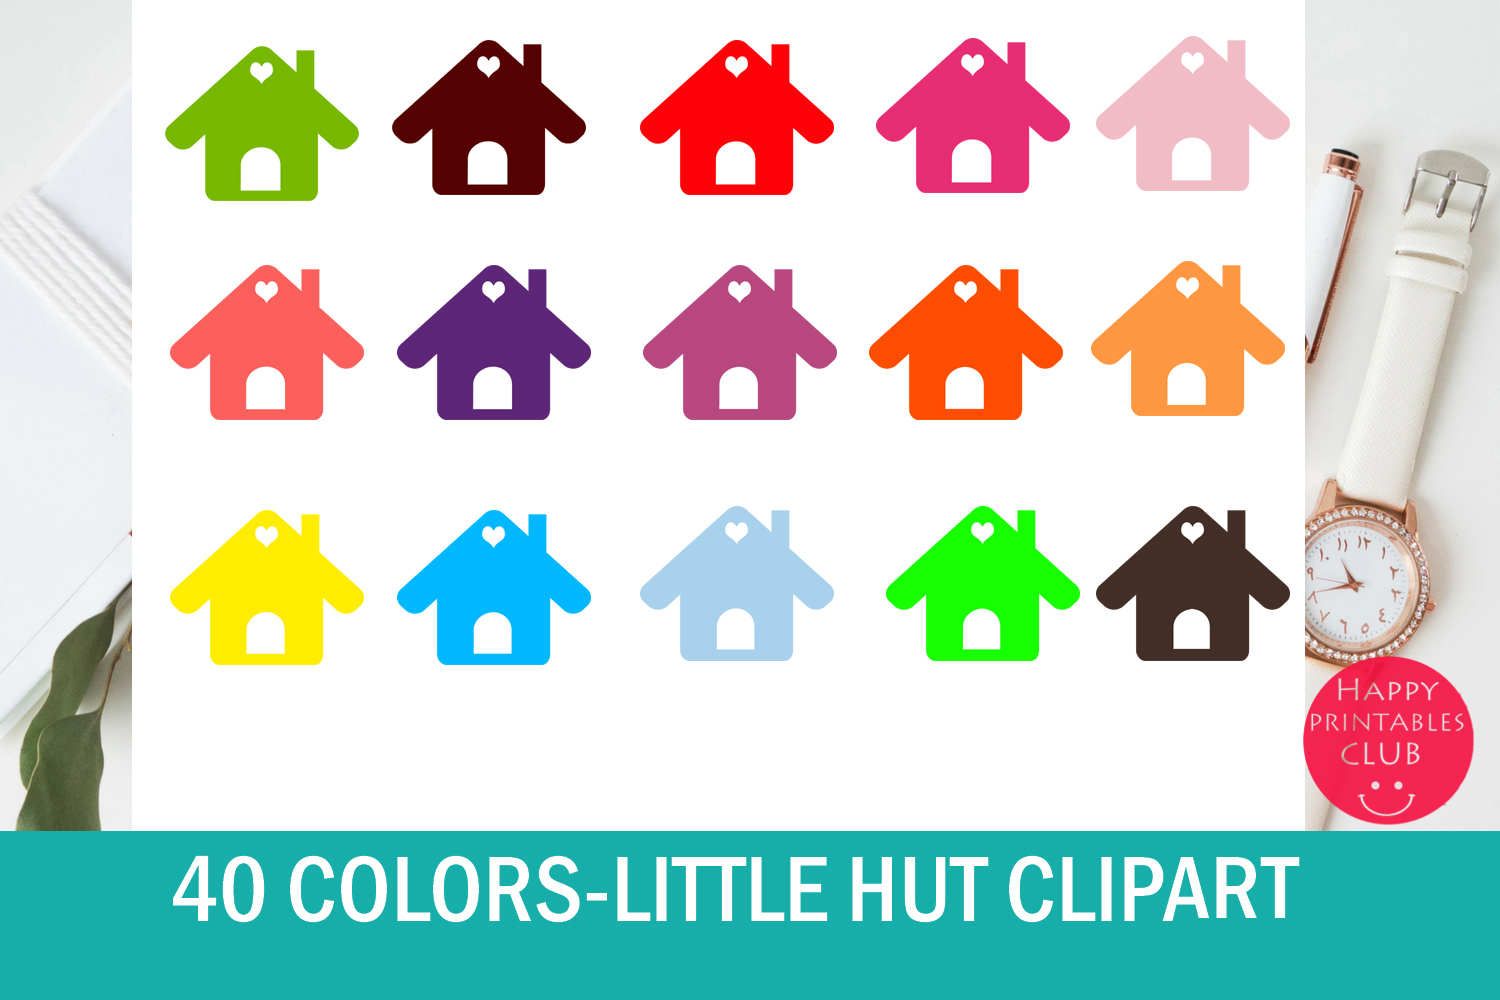 40 Cute House Clipart Graphics Graphic by Happy Printables ...